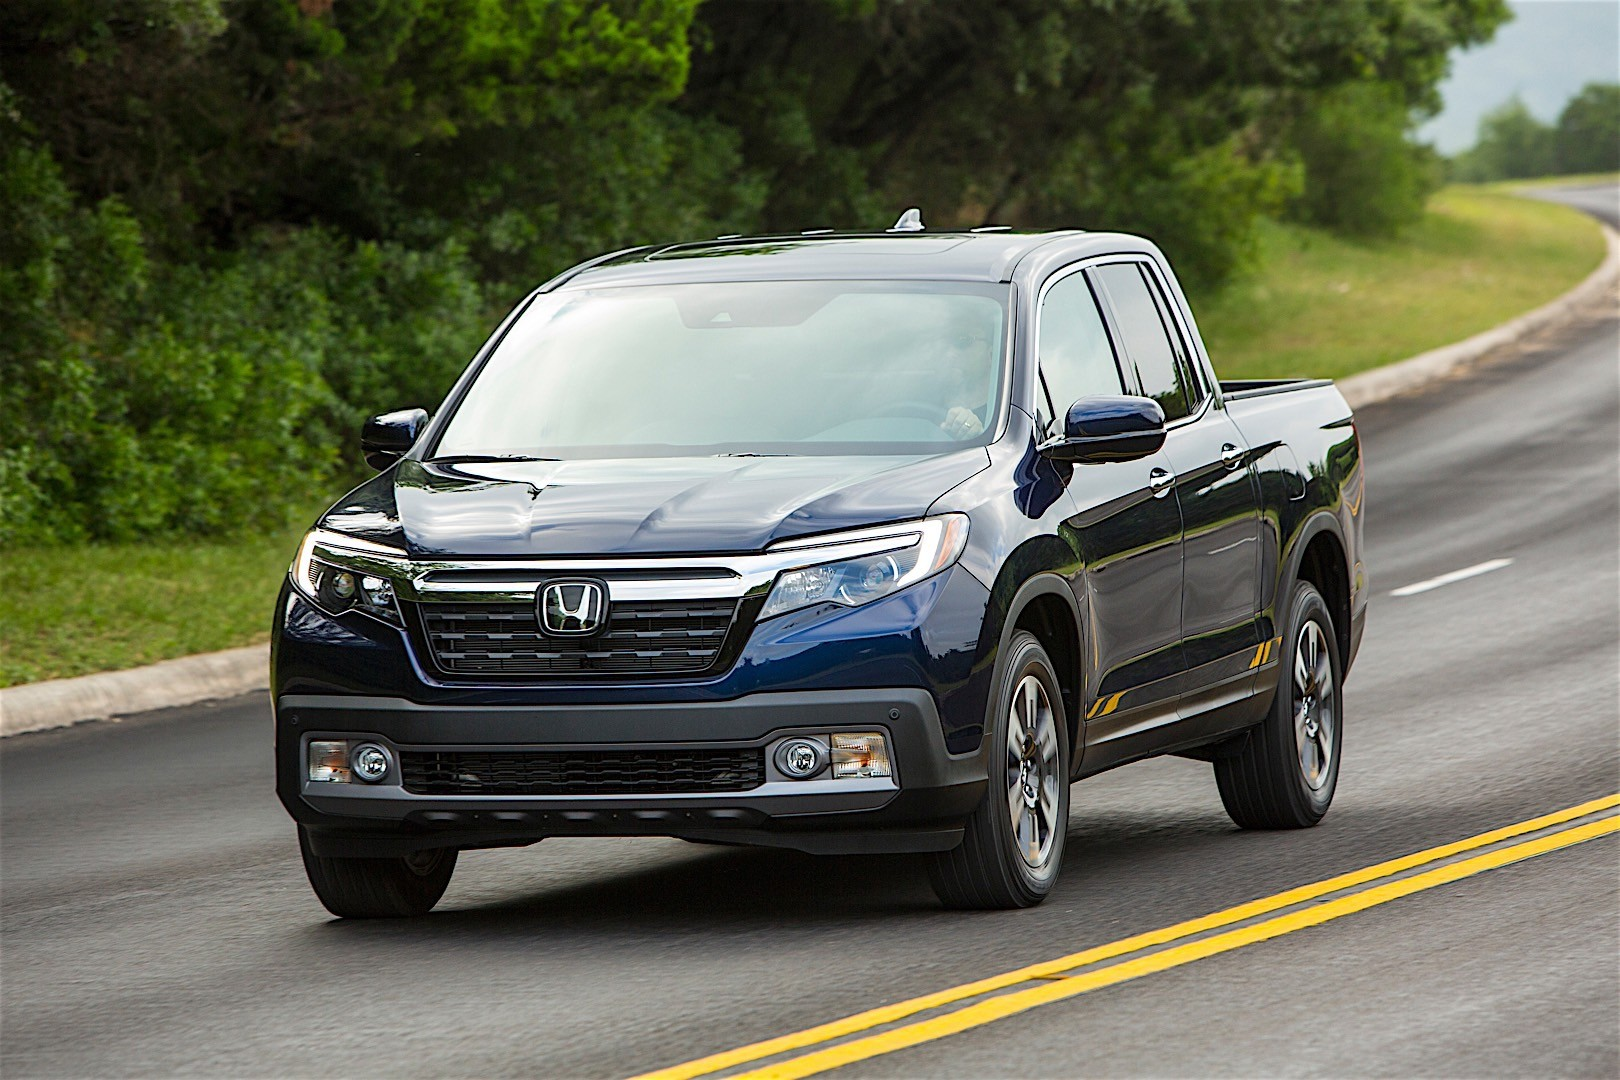 honda ridgeline specs photos 2016 2017 2018 autoevolution. Black Bedroom Furniture Sets. Home Design Ideas